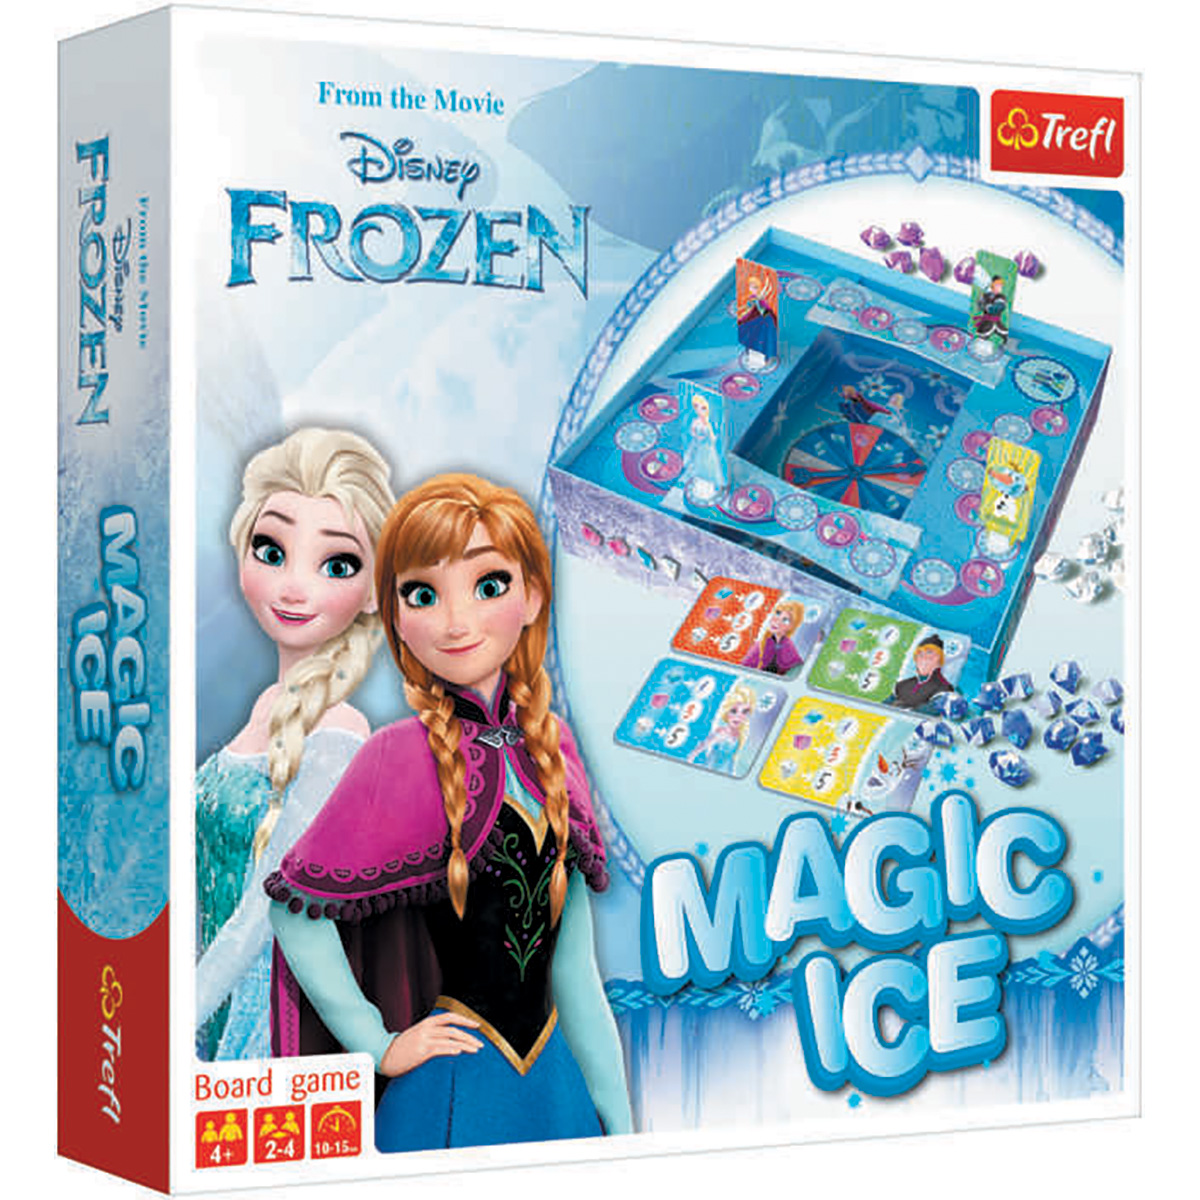 Joc de societate Trefl, Disney Frozen, Magic Ice